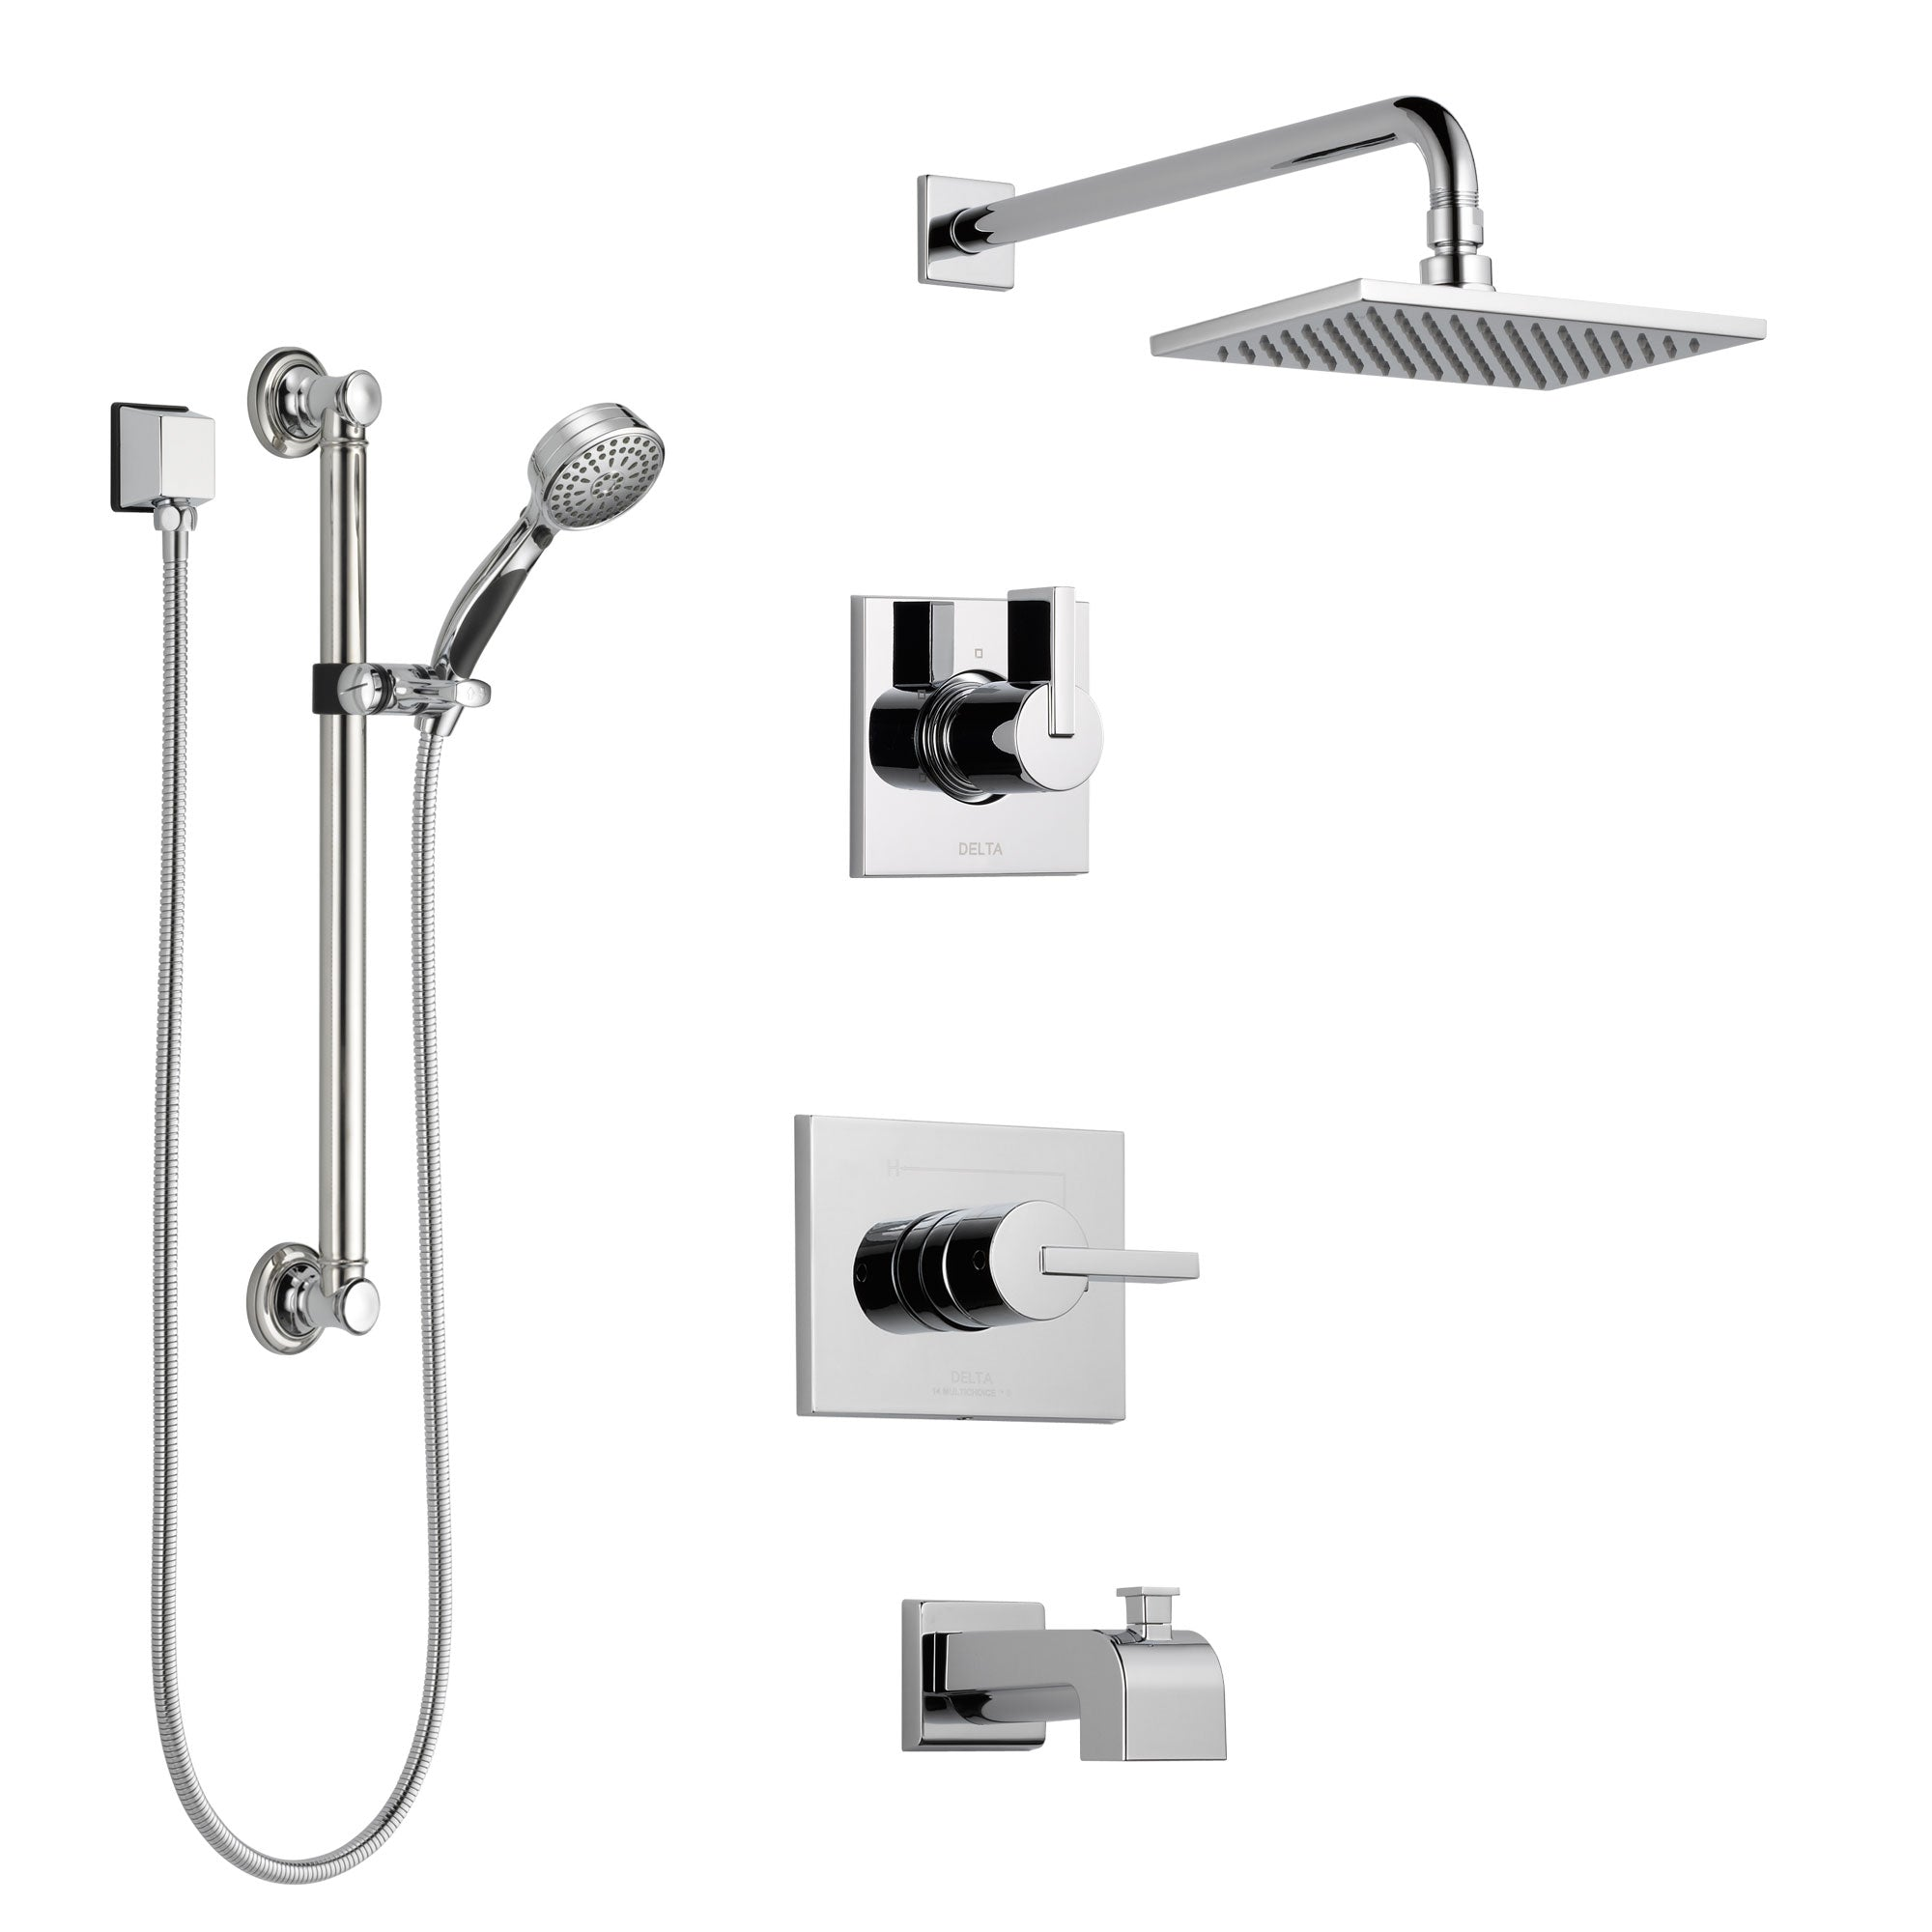 Delta Vero Chrome Finish Tub and Shower System with Control Handle, 3-Setting Diverter, Showerhead, and Hand Shower with Grab Bar SS1445323